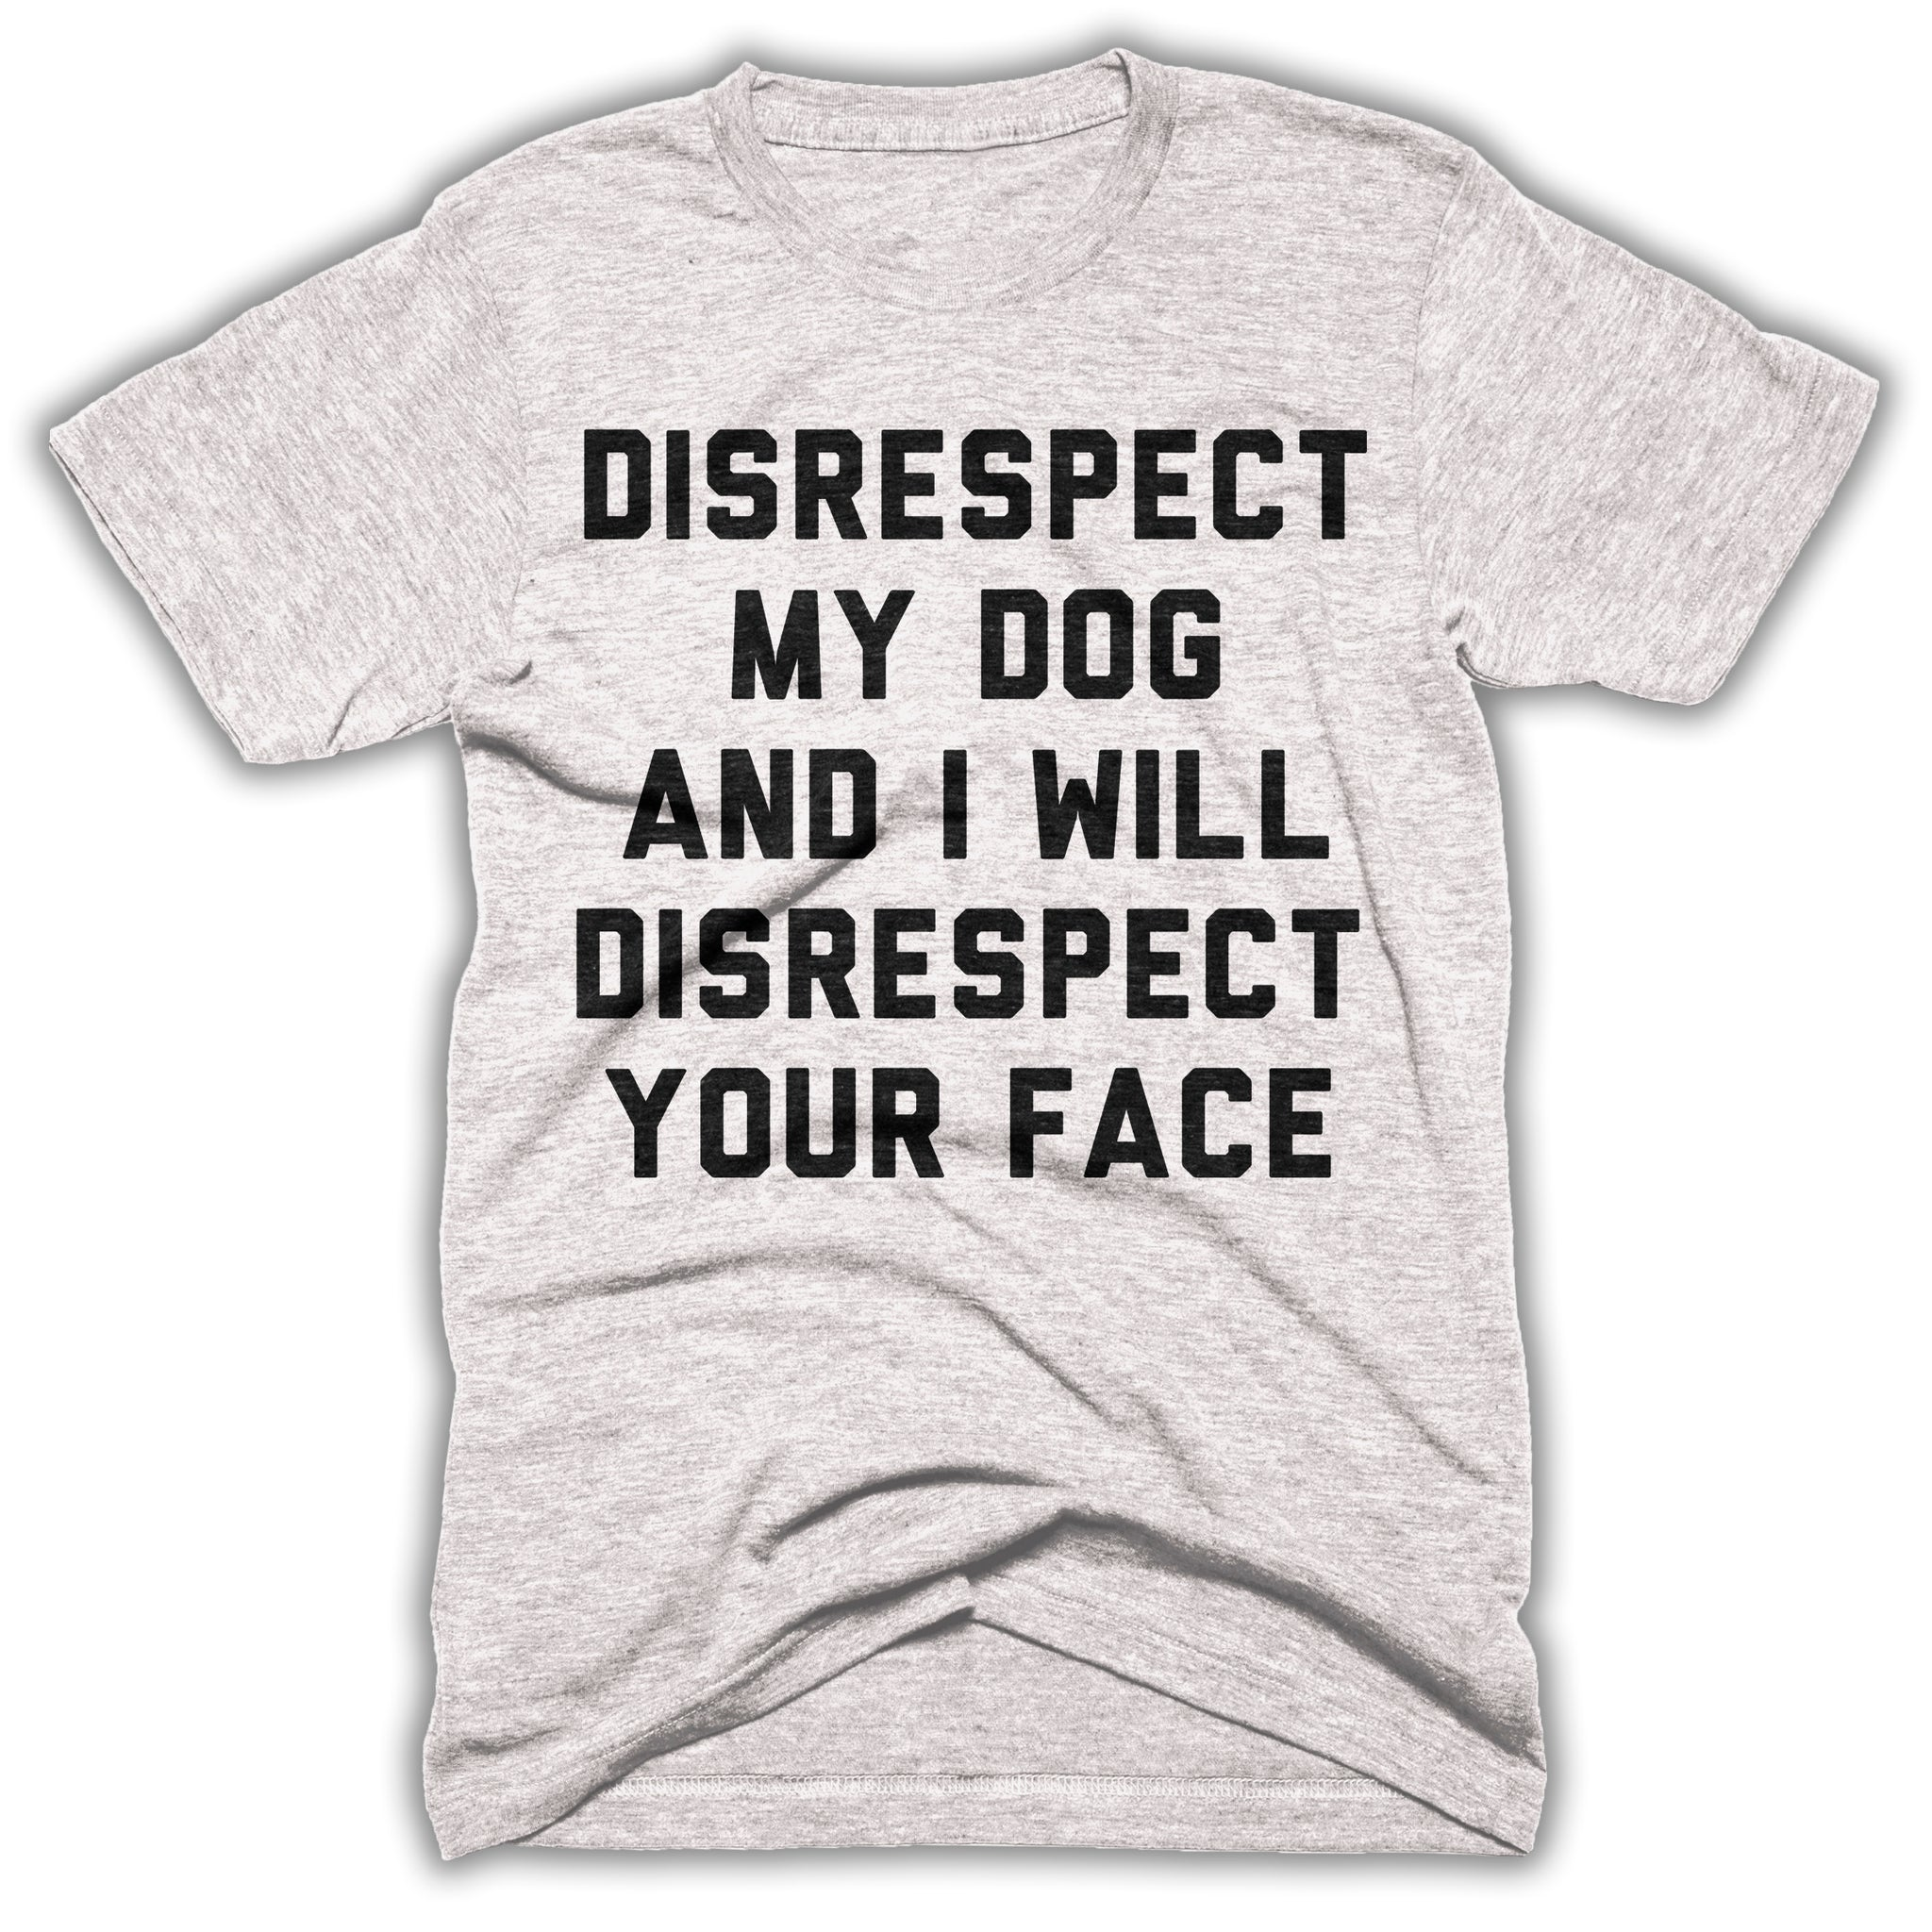 3fef7809 Disrespect My Dog And I Will Disrespect Your Face Mens Shirt ...